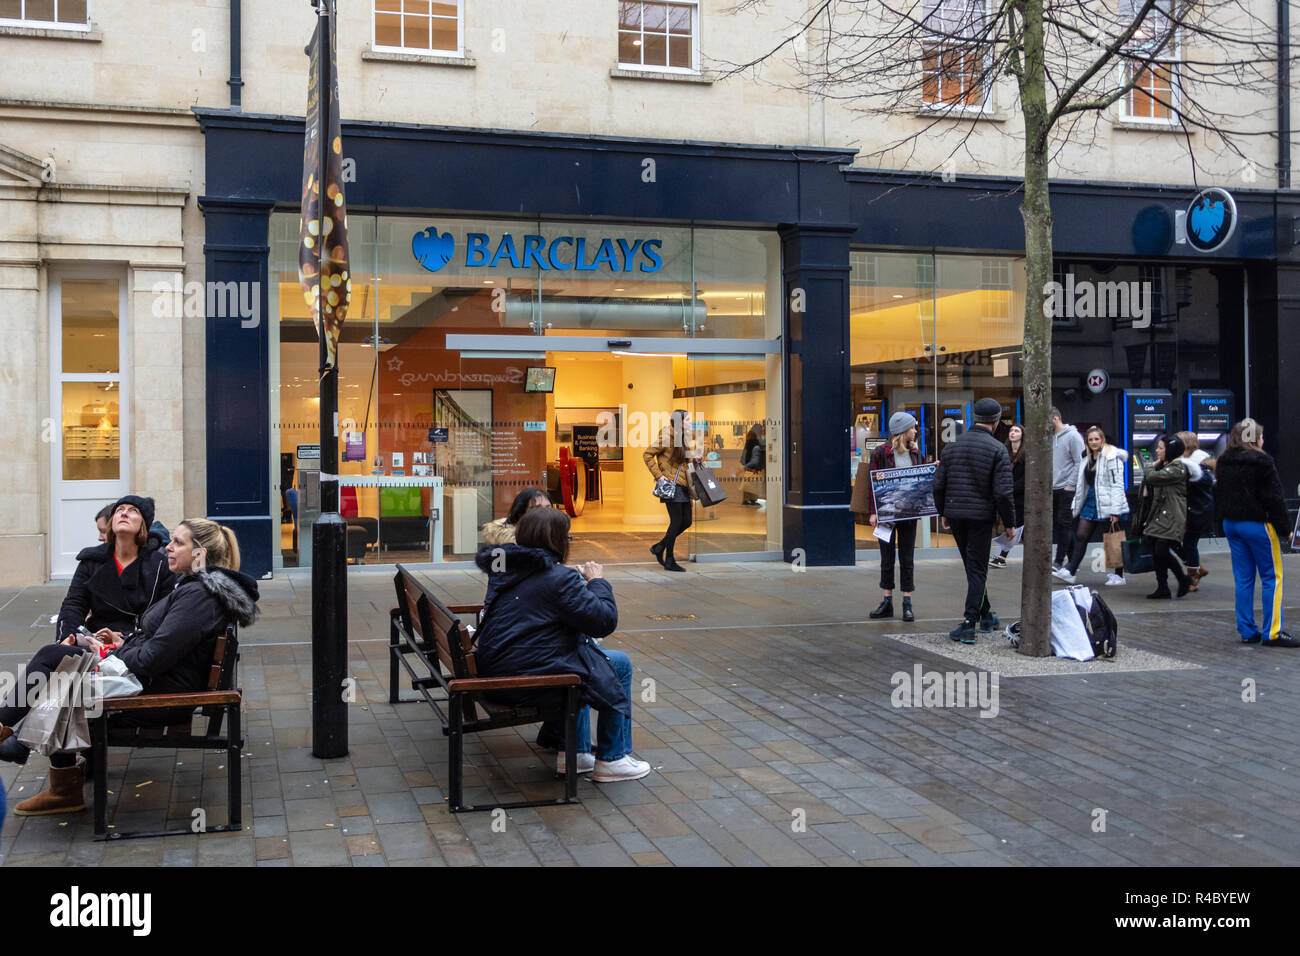 Barclays Bank branch in Southgate shopping center Bath UK with people walking past, sitting on seating outside and a small anti barclays protest - Stock Image